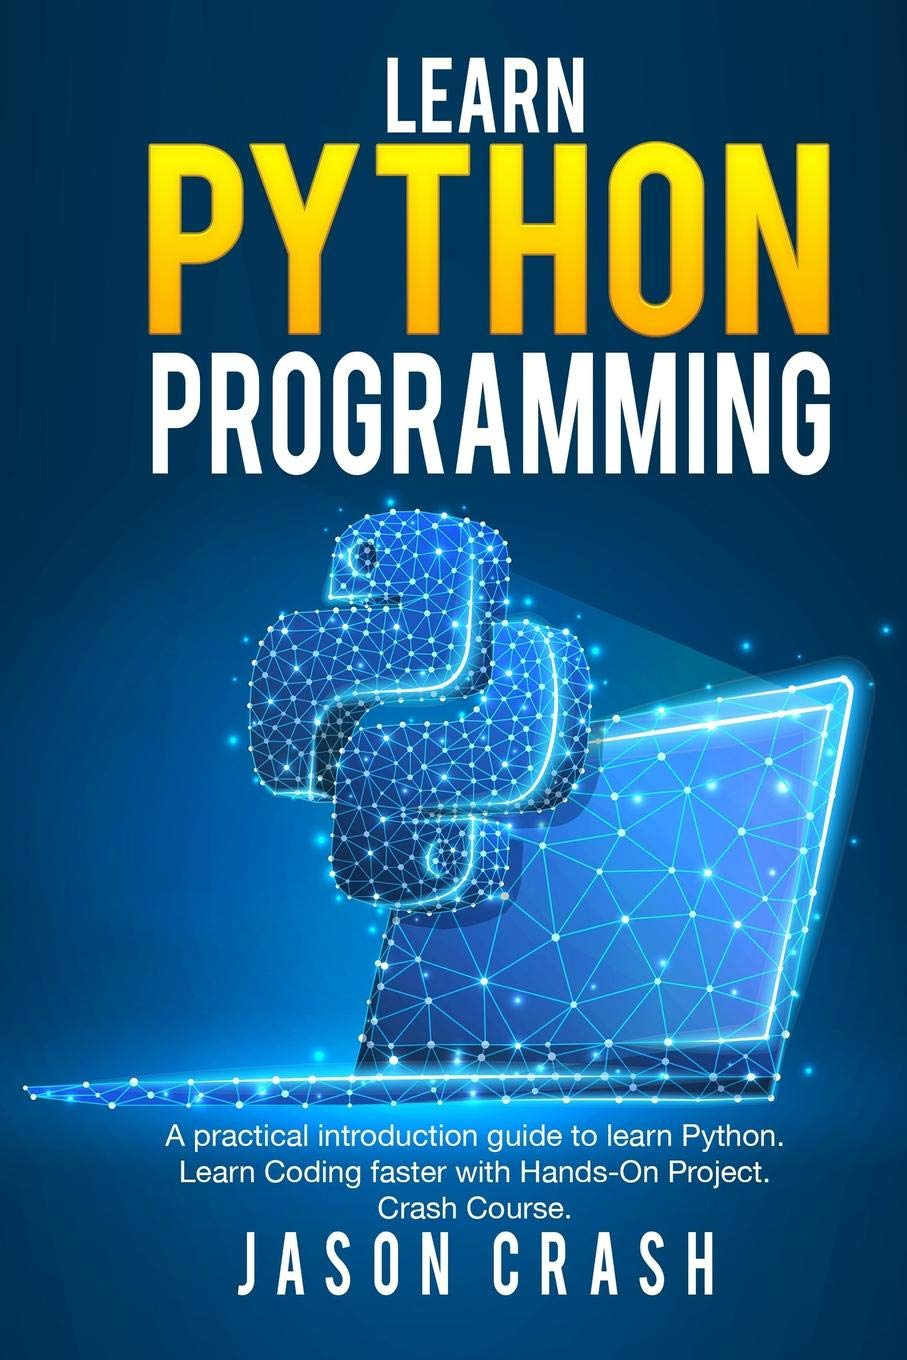 Learn Python Programming Introduction Hands product image